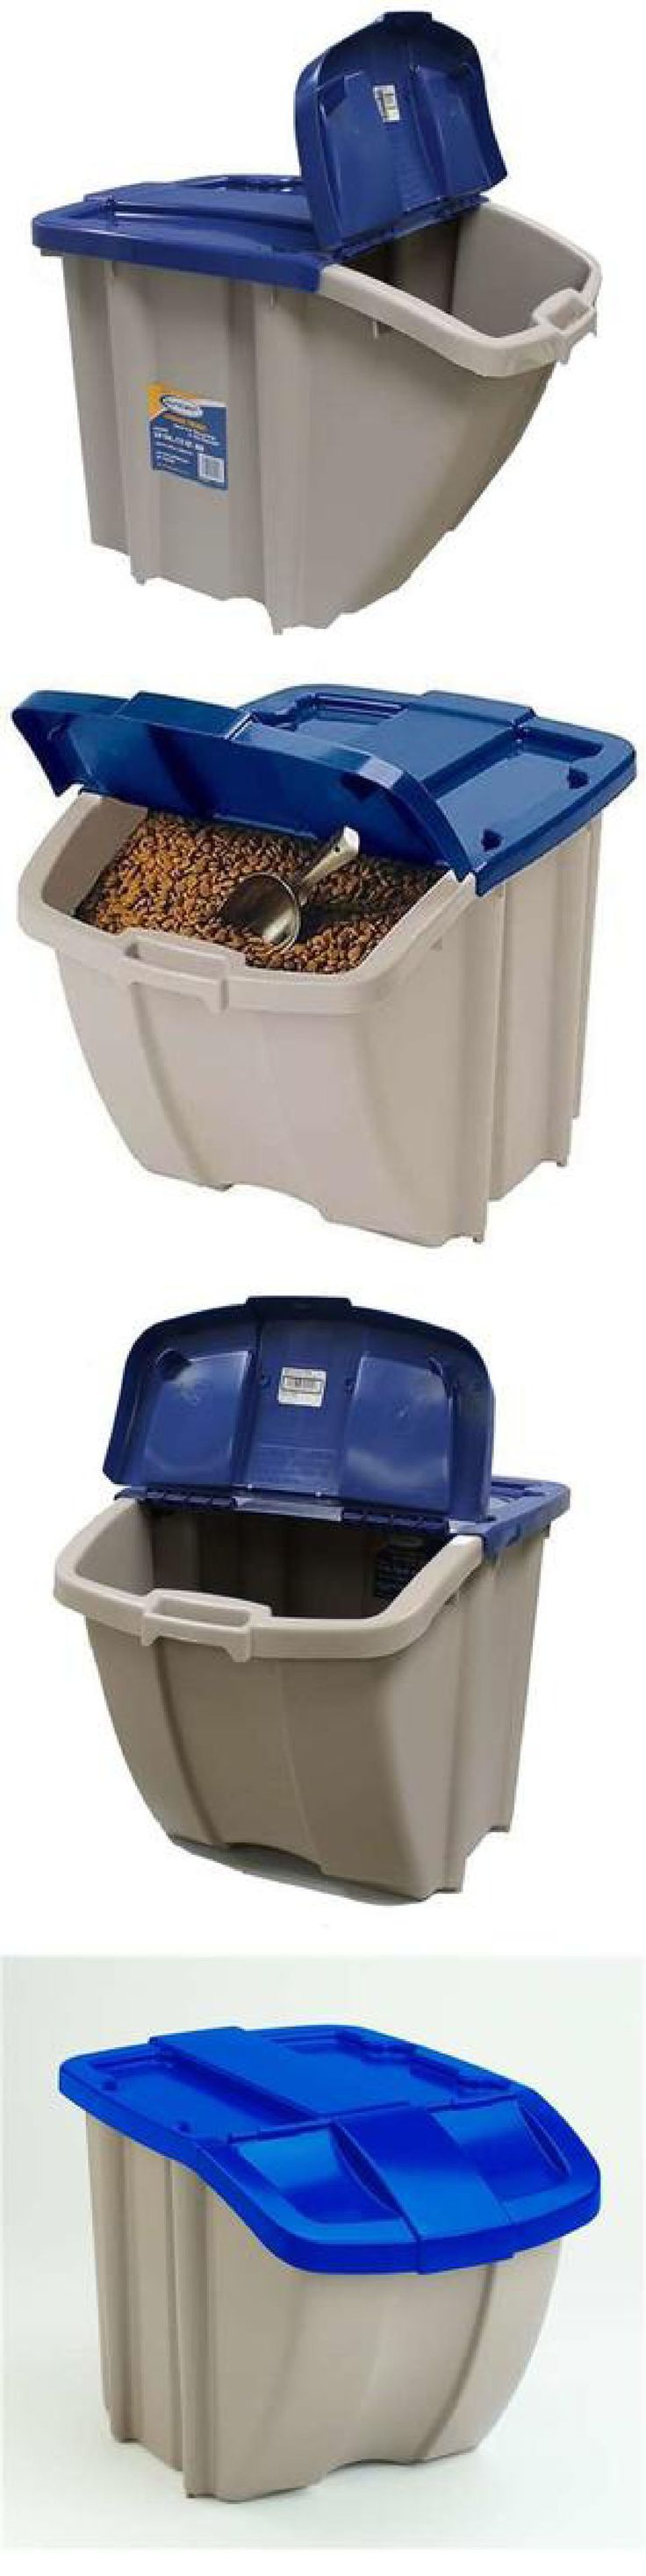 Dishes Feeders And Fountains 177789 Dog Food Container Storage Bin 50 Lbs Pet Cat Feeding